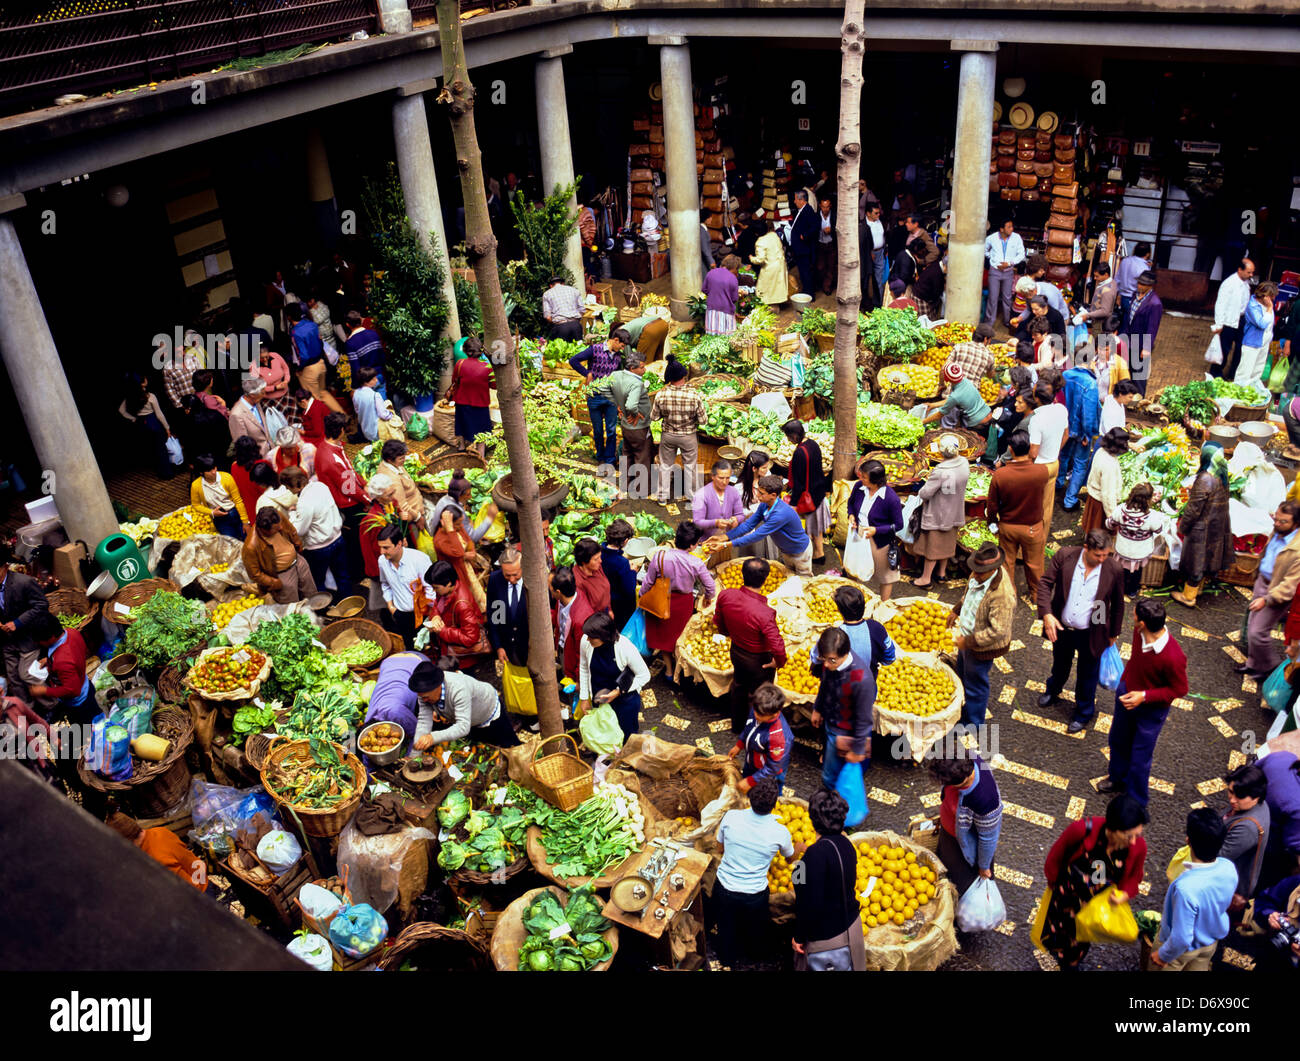 8626. Fruit & Vegetable Market, Funchal, Madiera, Portugal, Europe - Stock Image